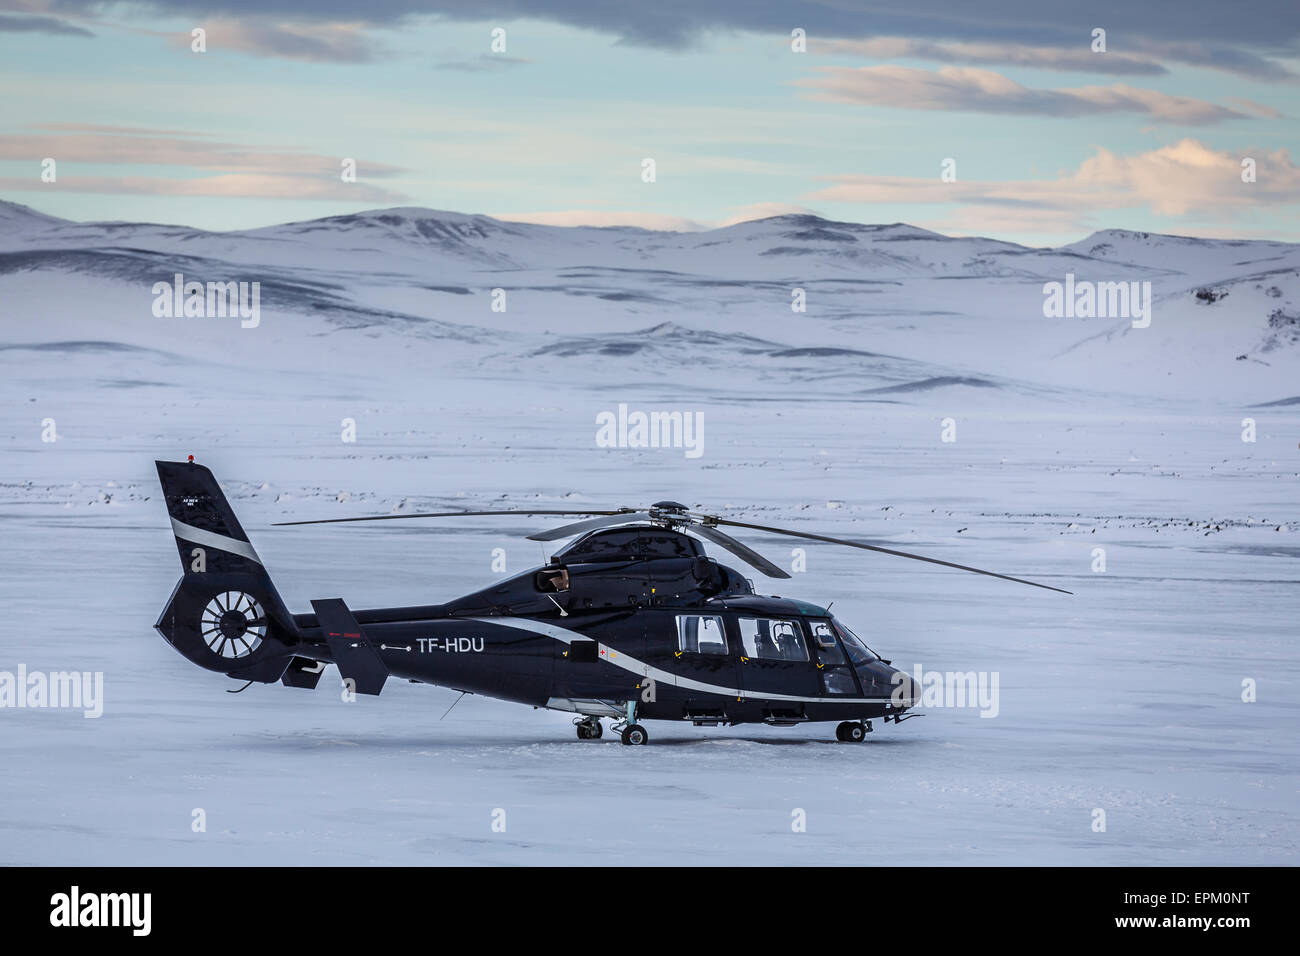 Helicopter by the Holuhraun Fissure Eruption, Bardarbunga Volcano, Iceland. - Stock Image